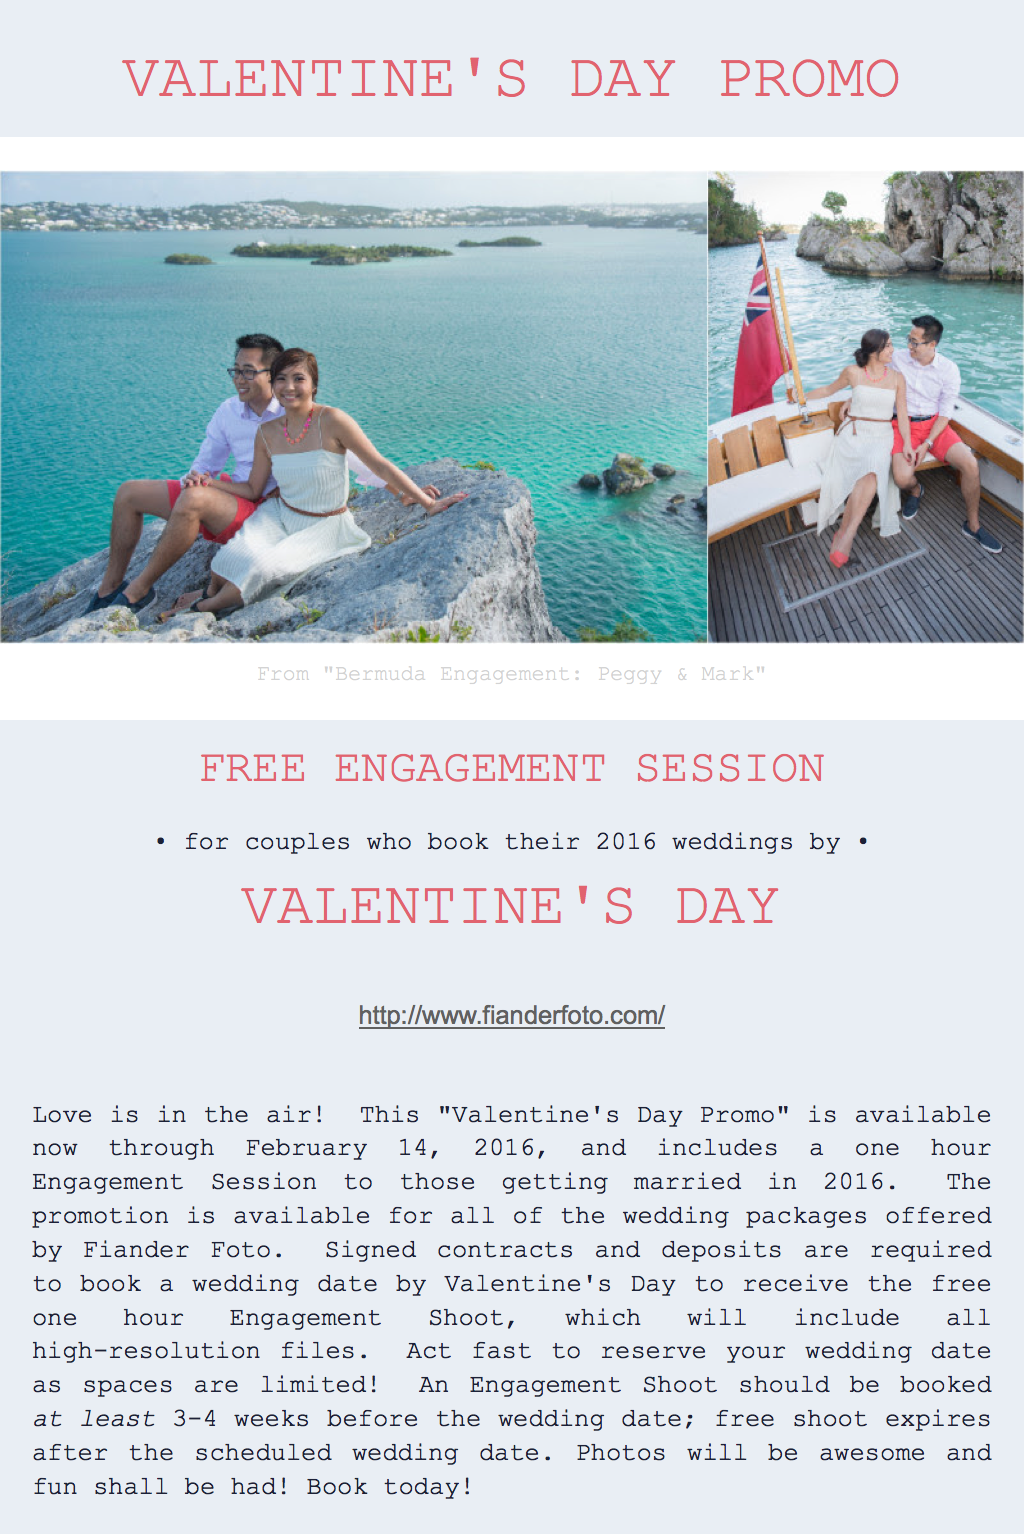 Valentine's Day Promo Bermuda Weddings